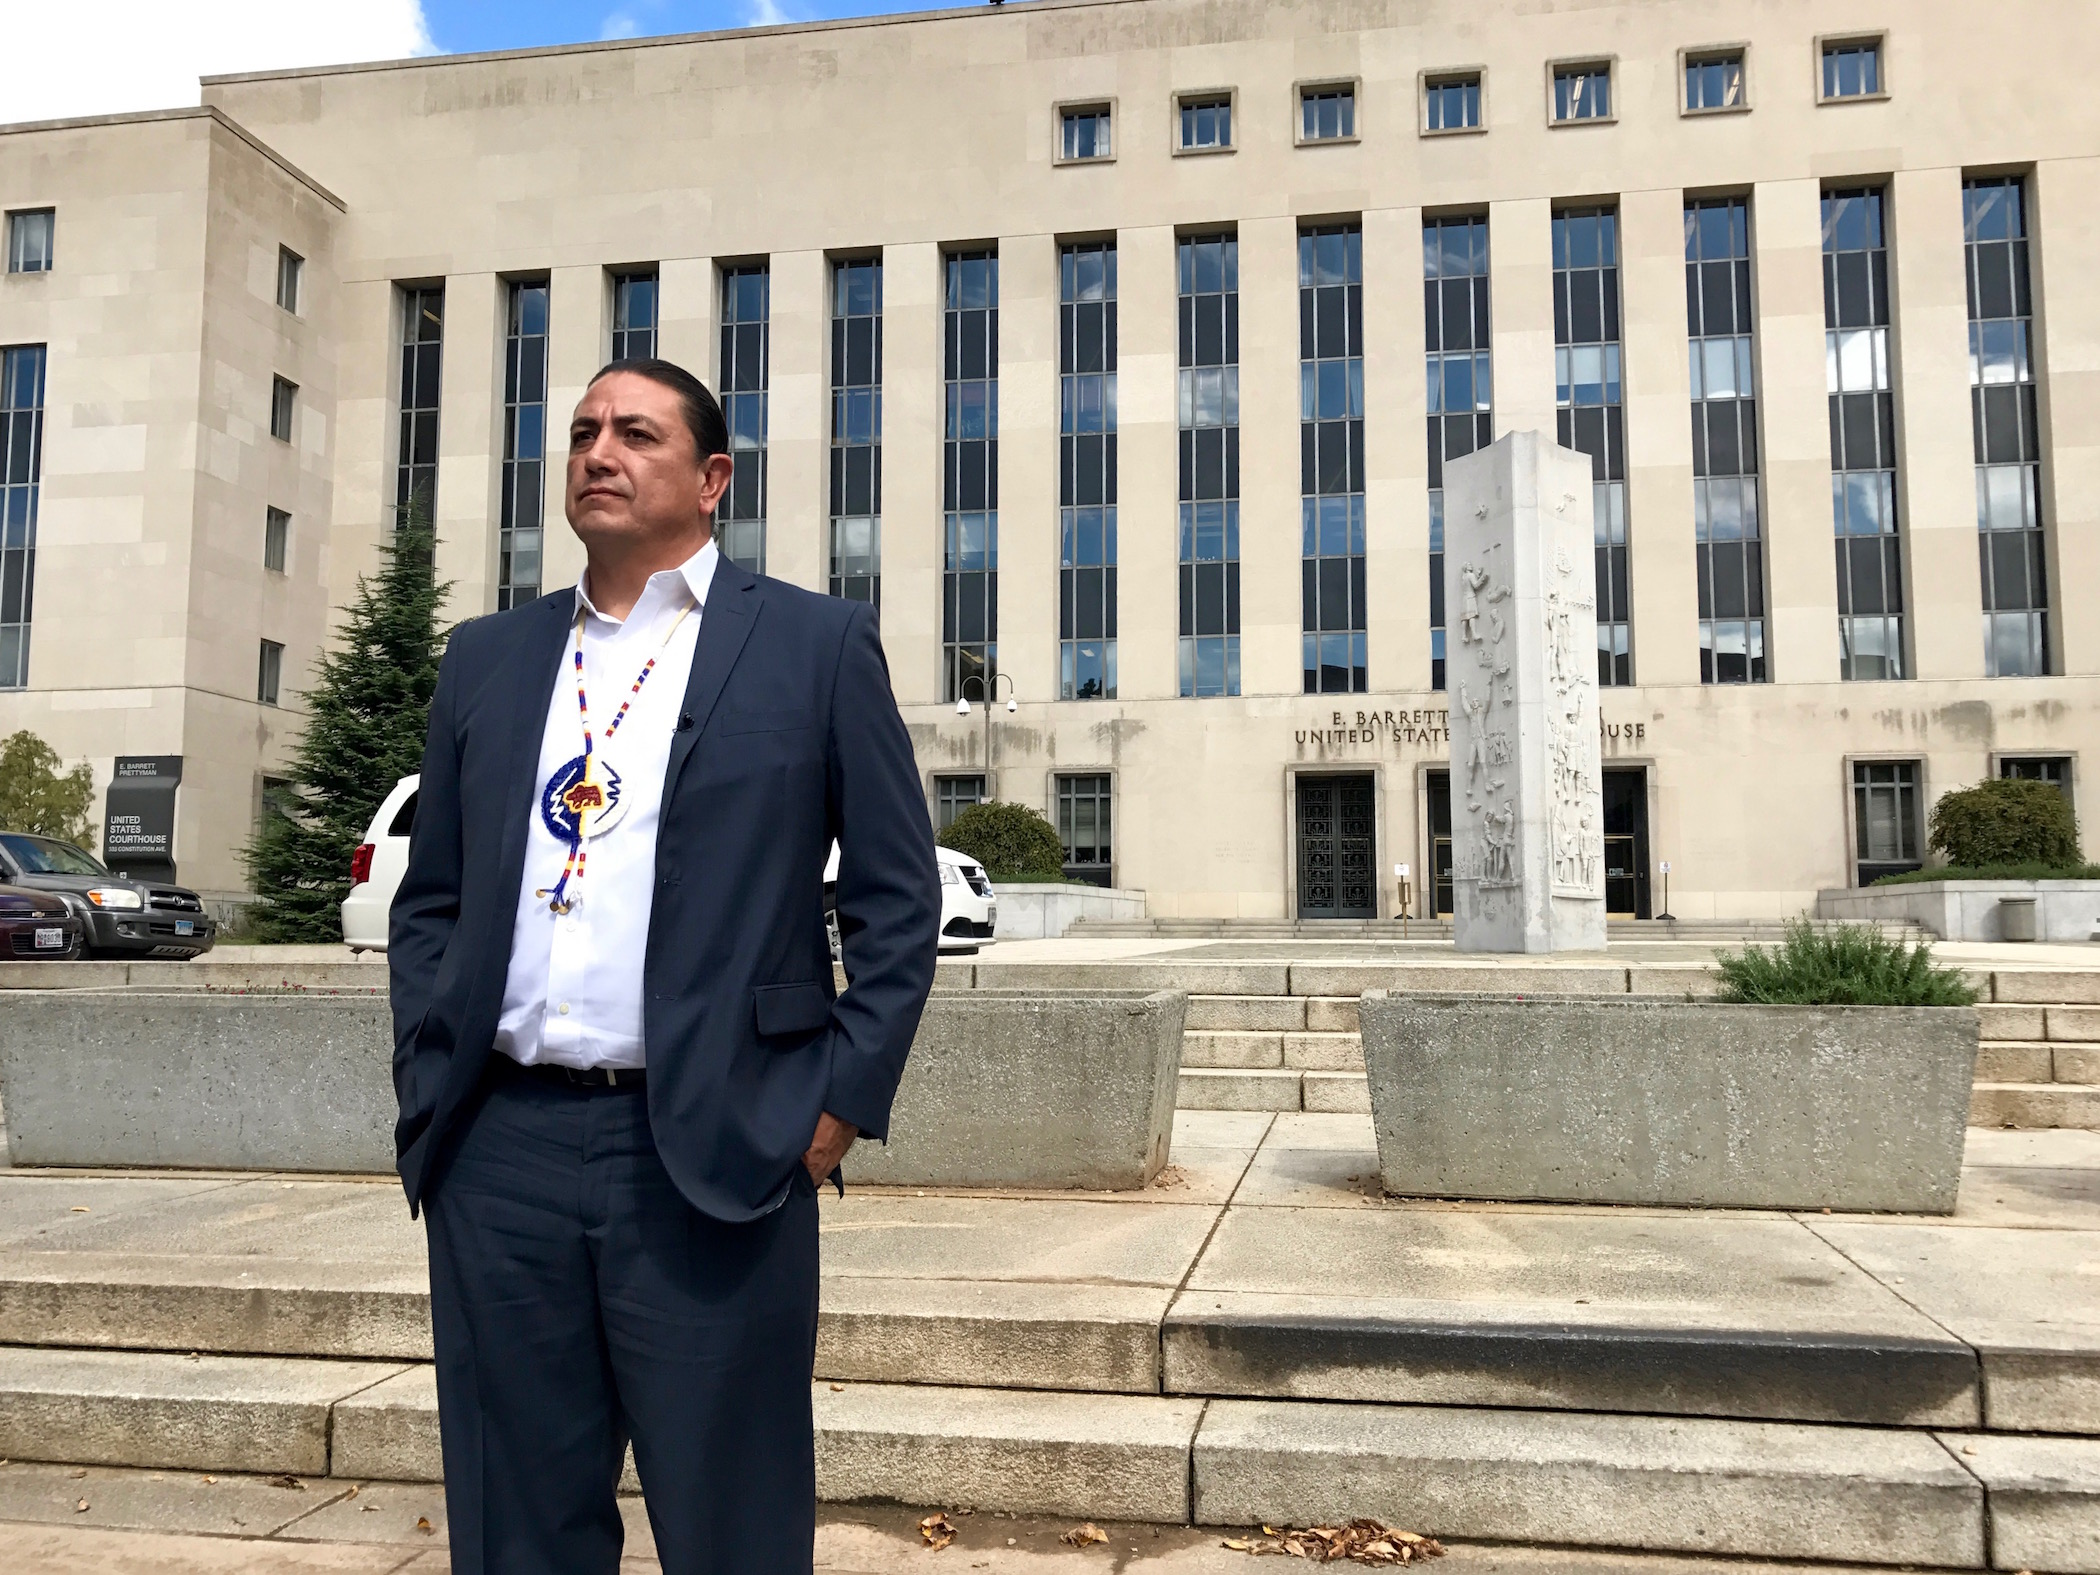 Appeals court takes up #NoDAPL case as pipeline remains in limbo